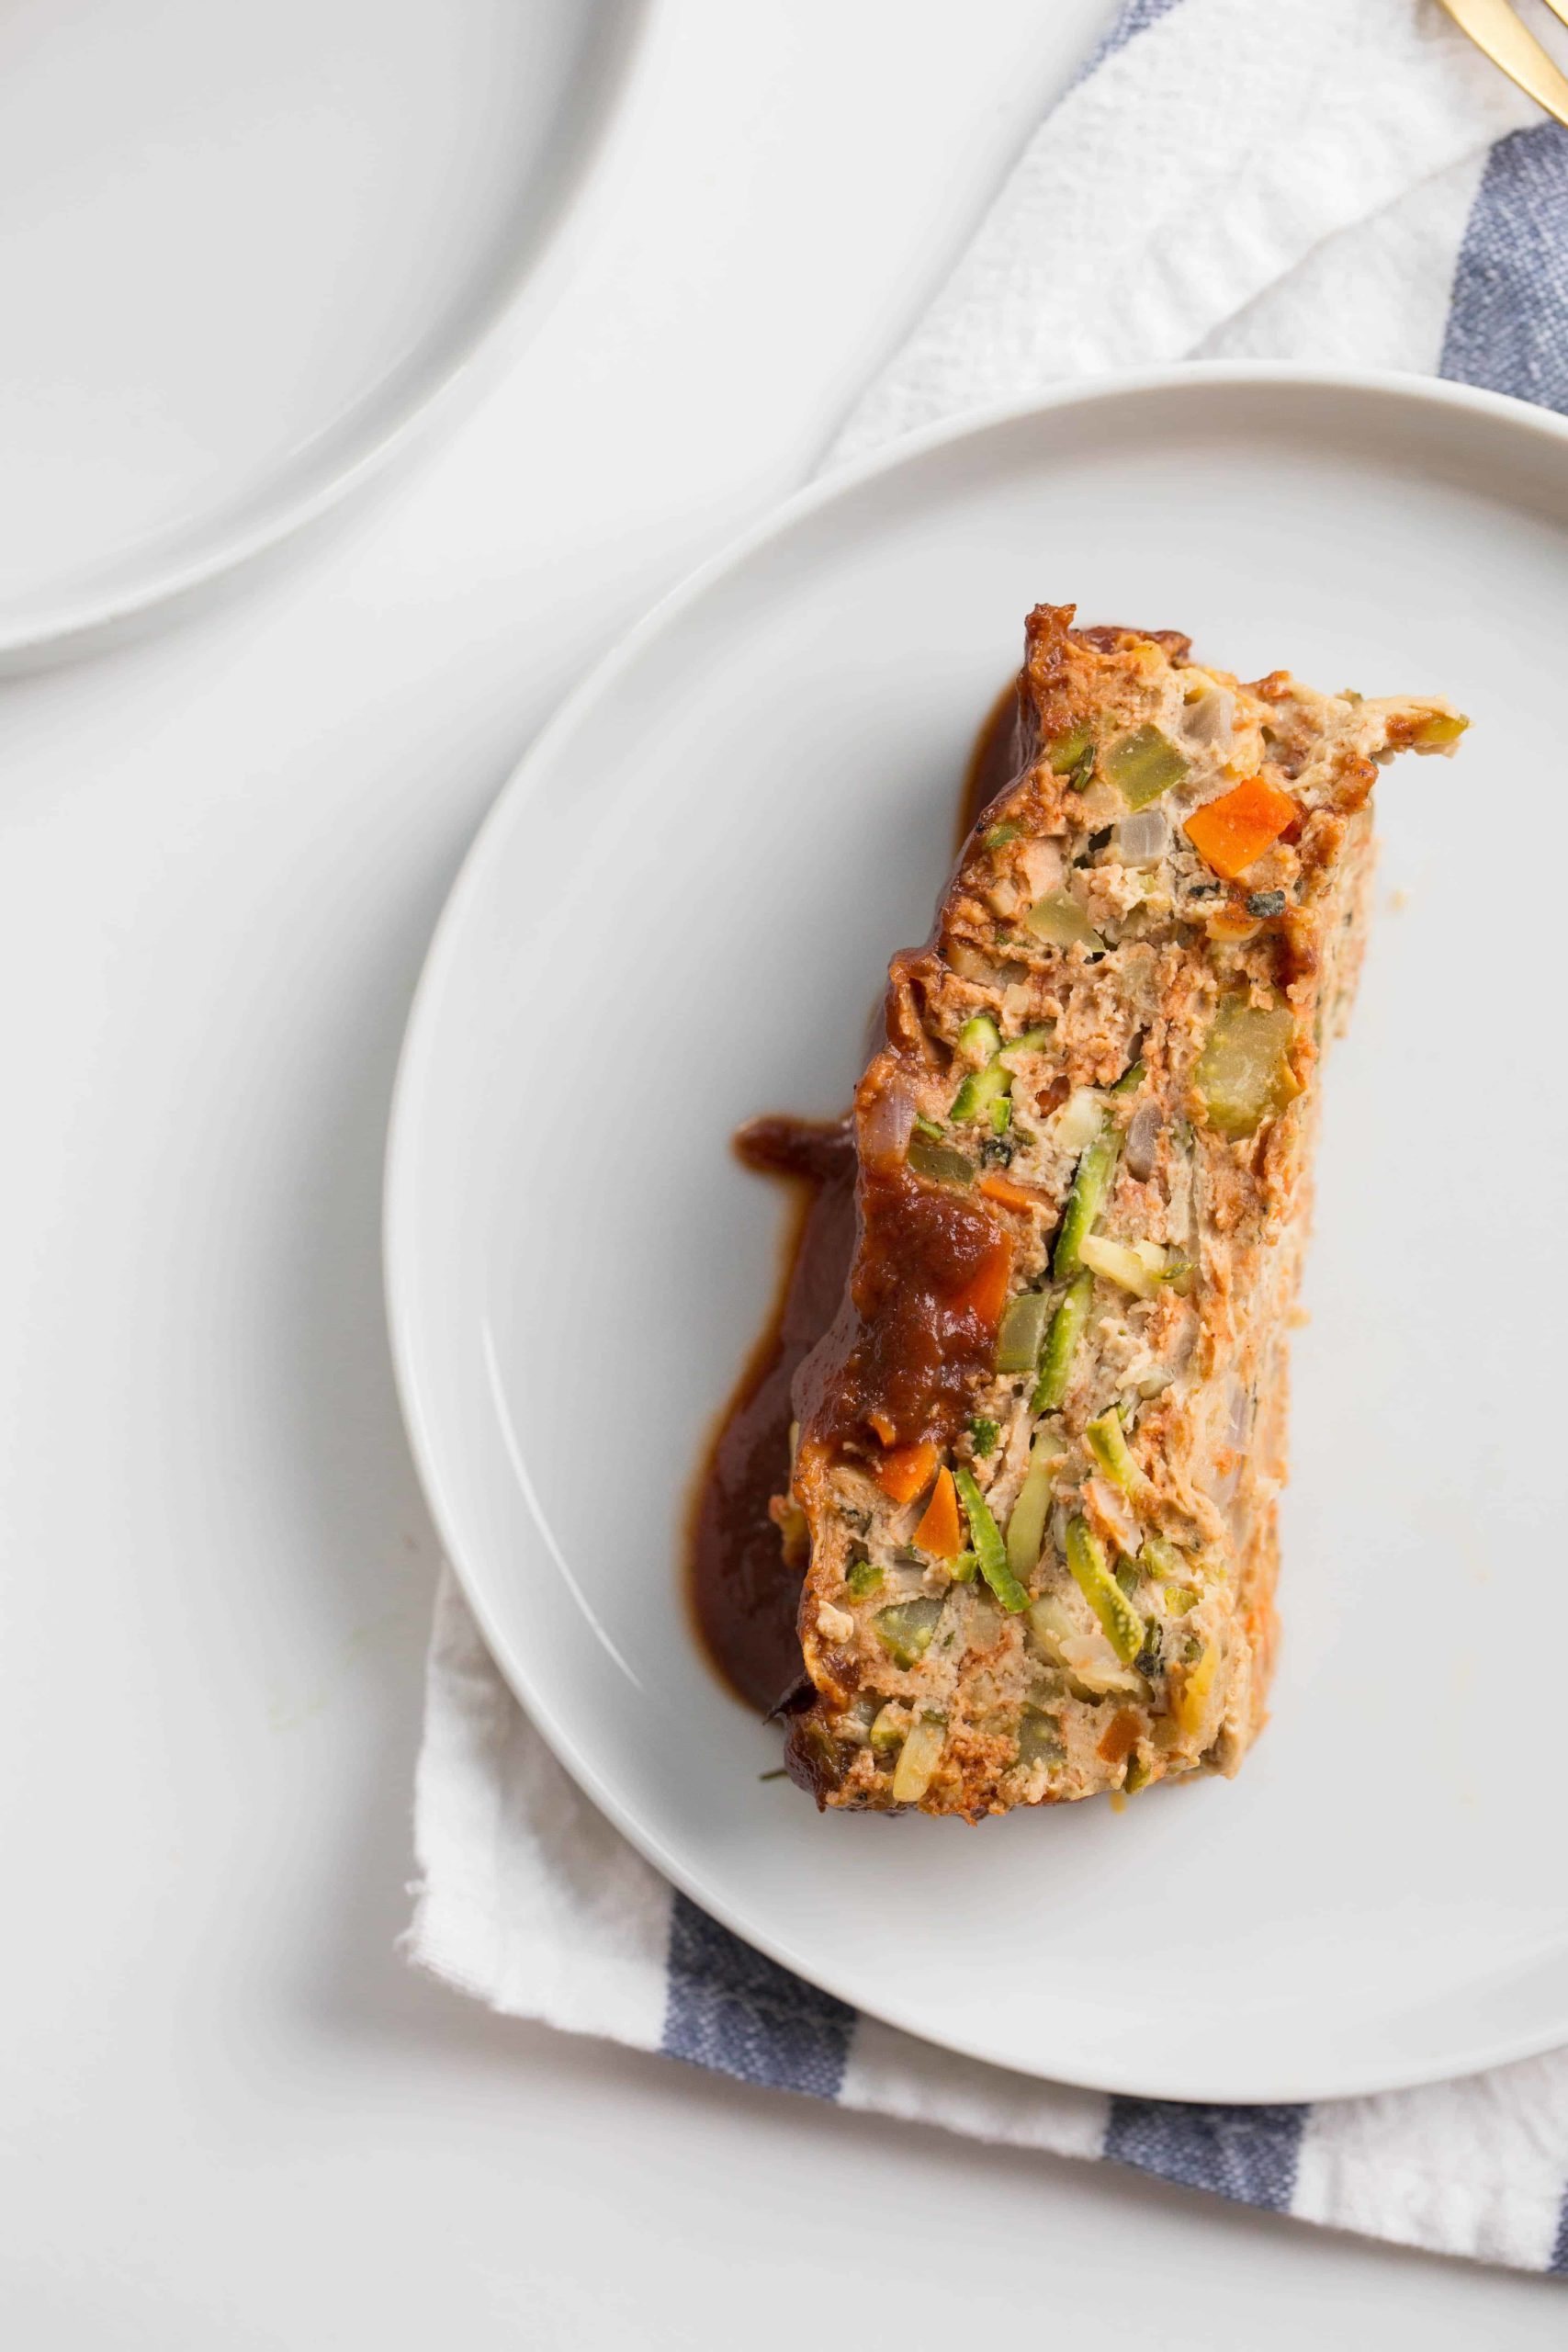 Gluten-Free Turkey Meatloaf with Zucchini Noodles